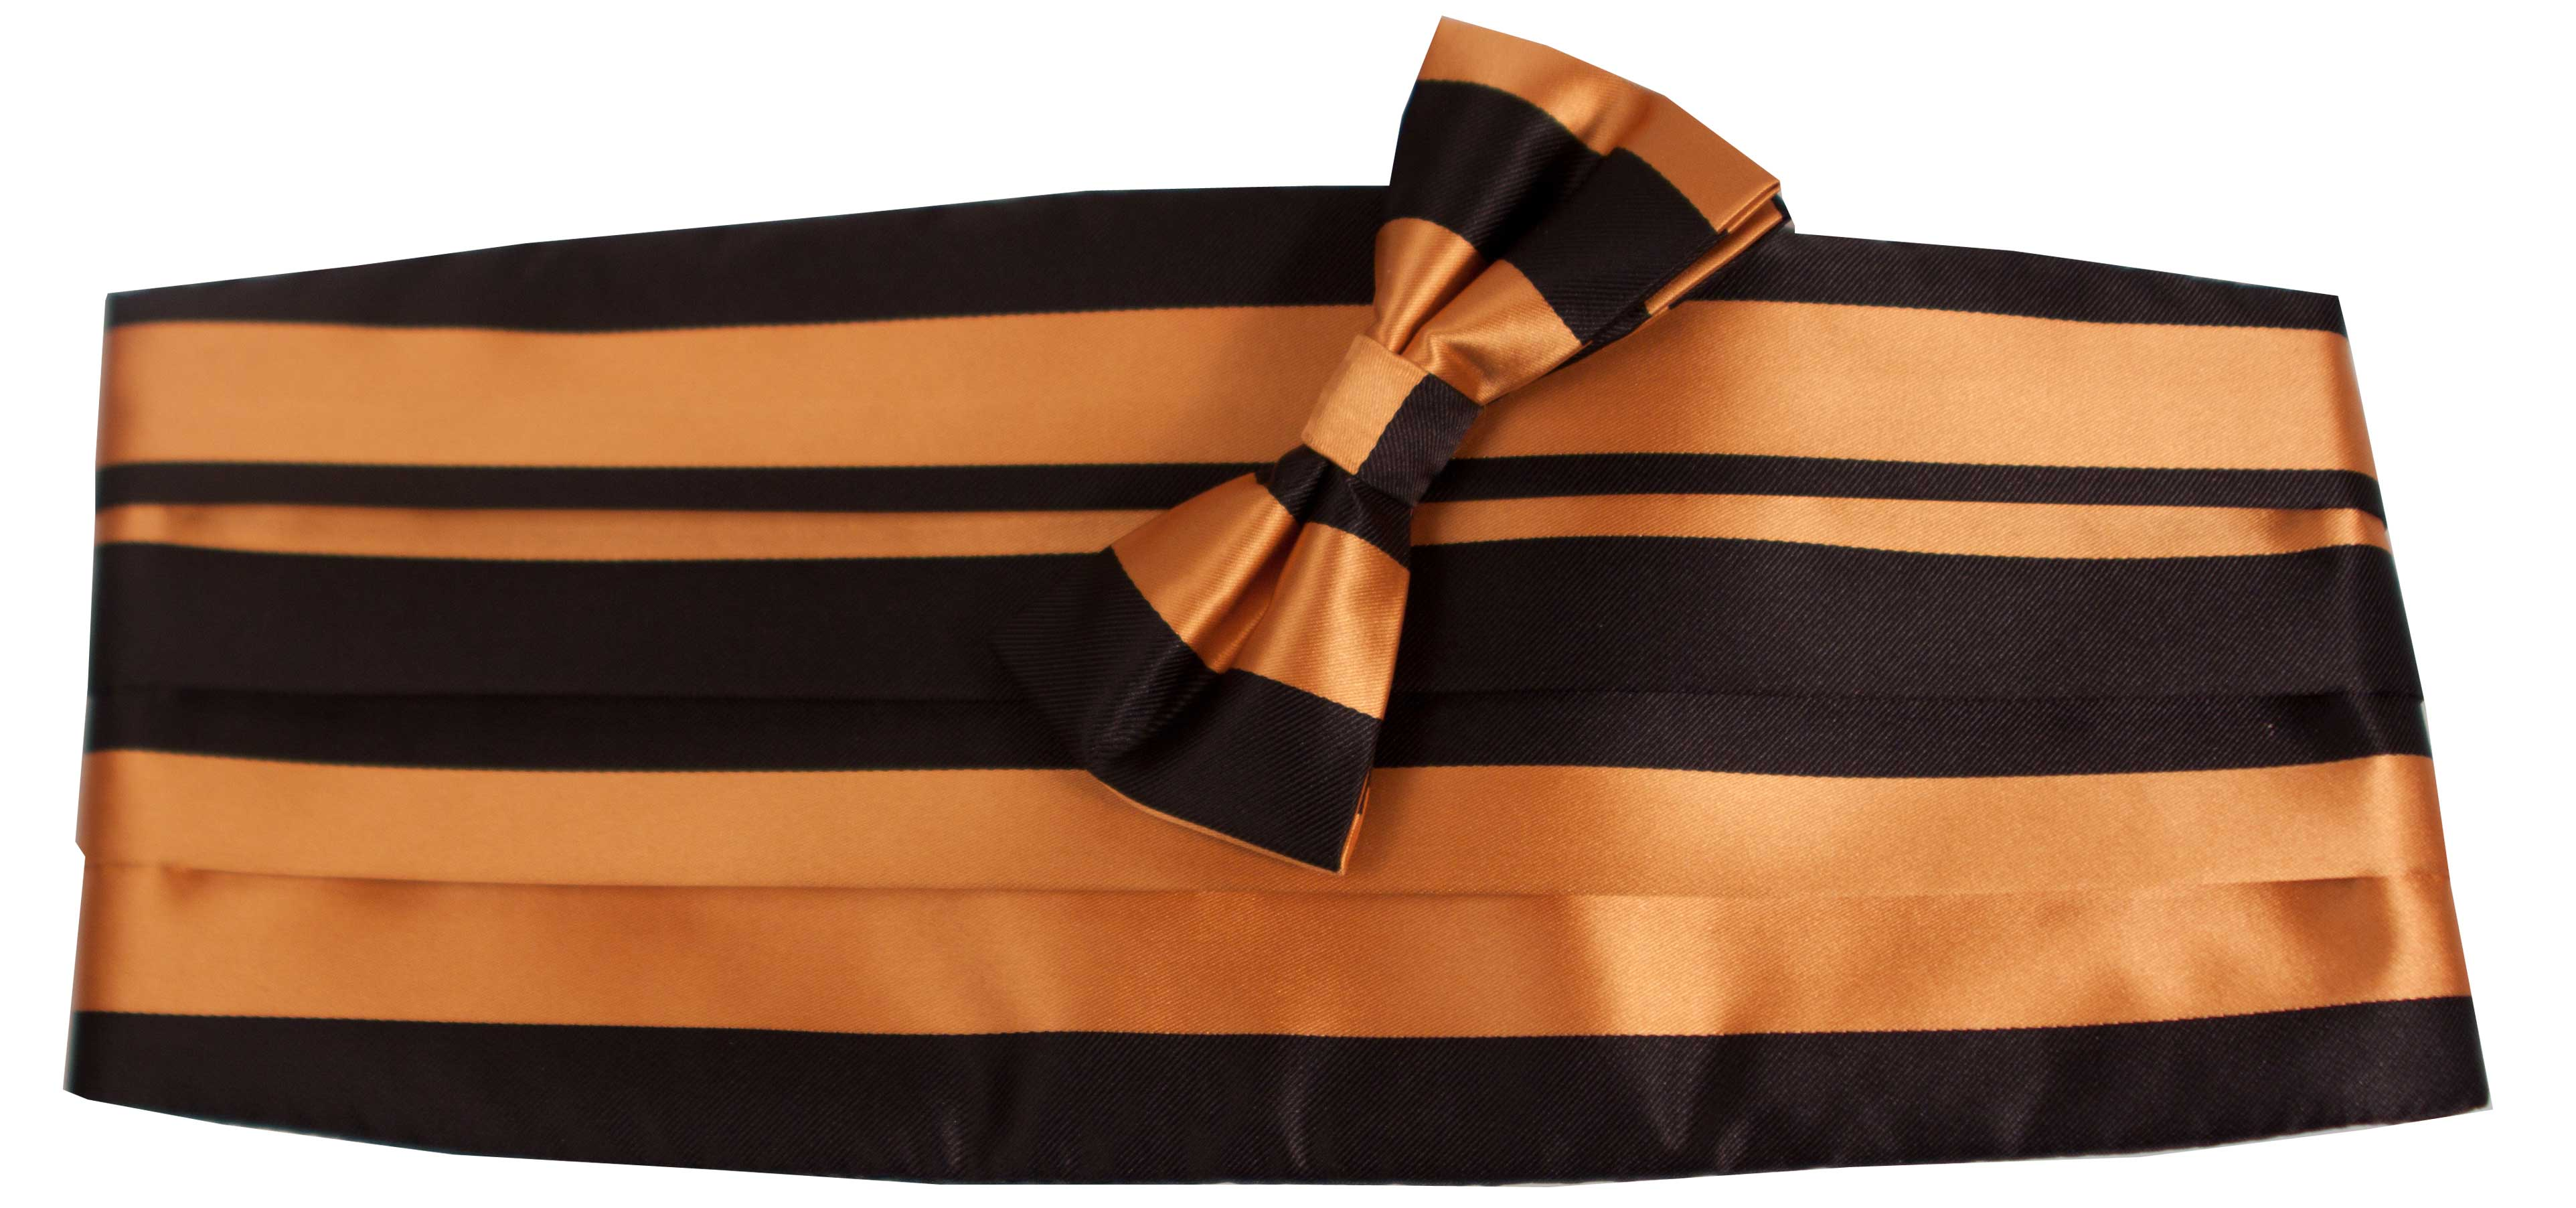 Cumberband (black and orange)